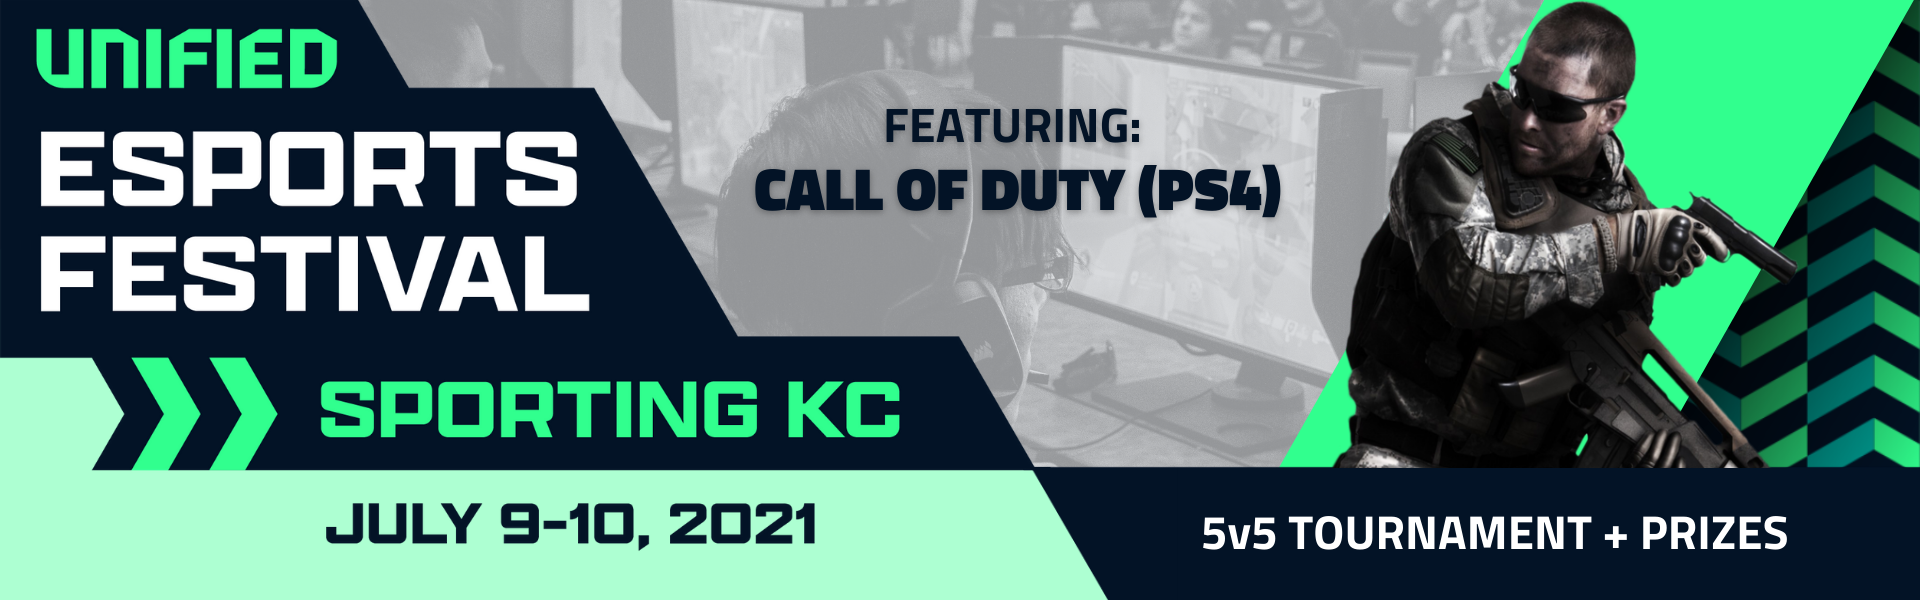 EF:SKC Featuring Call of Duty (PS4)